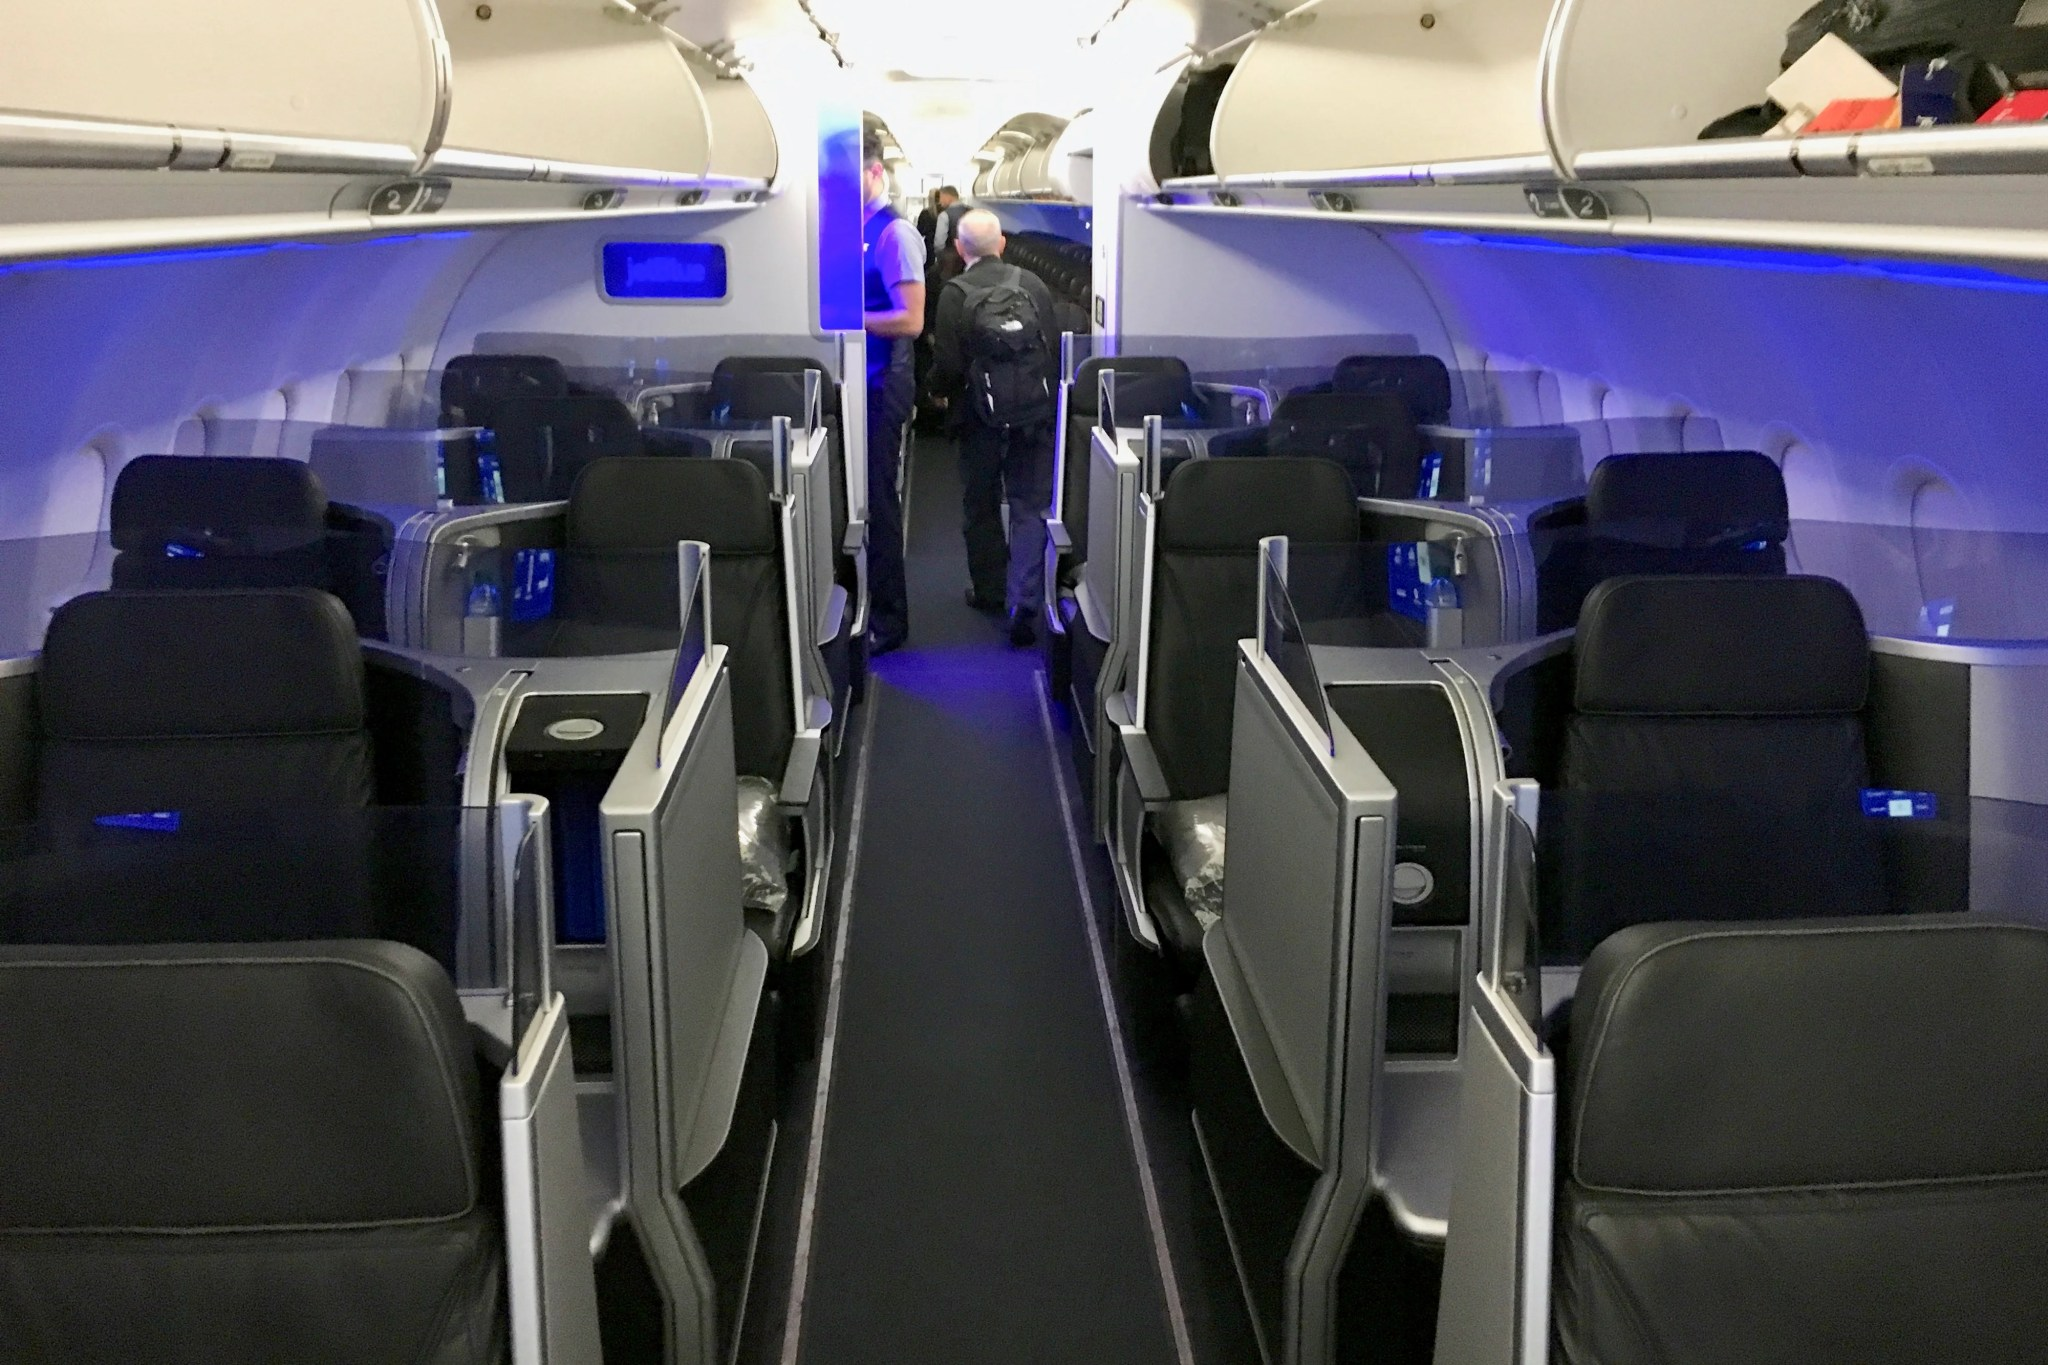 According to SeatGuru, Sun Country's 39 inches of seat pitch in first lands in between what you'll find aboard the 's of Delta (38″) and American (40″ to 42″) with average domestic first class width. All seats in this cabin have good recline, adjustable headrests and a generous center console.